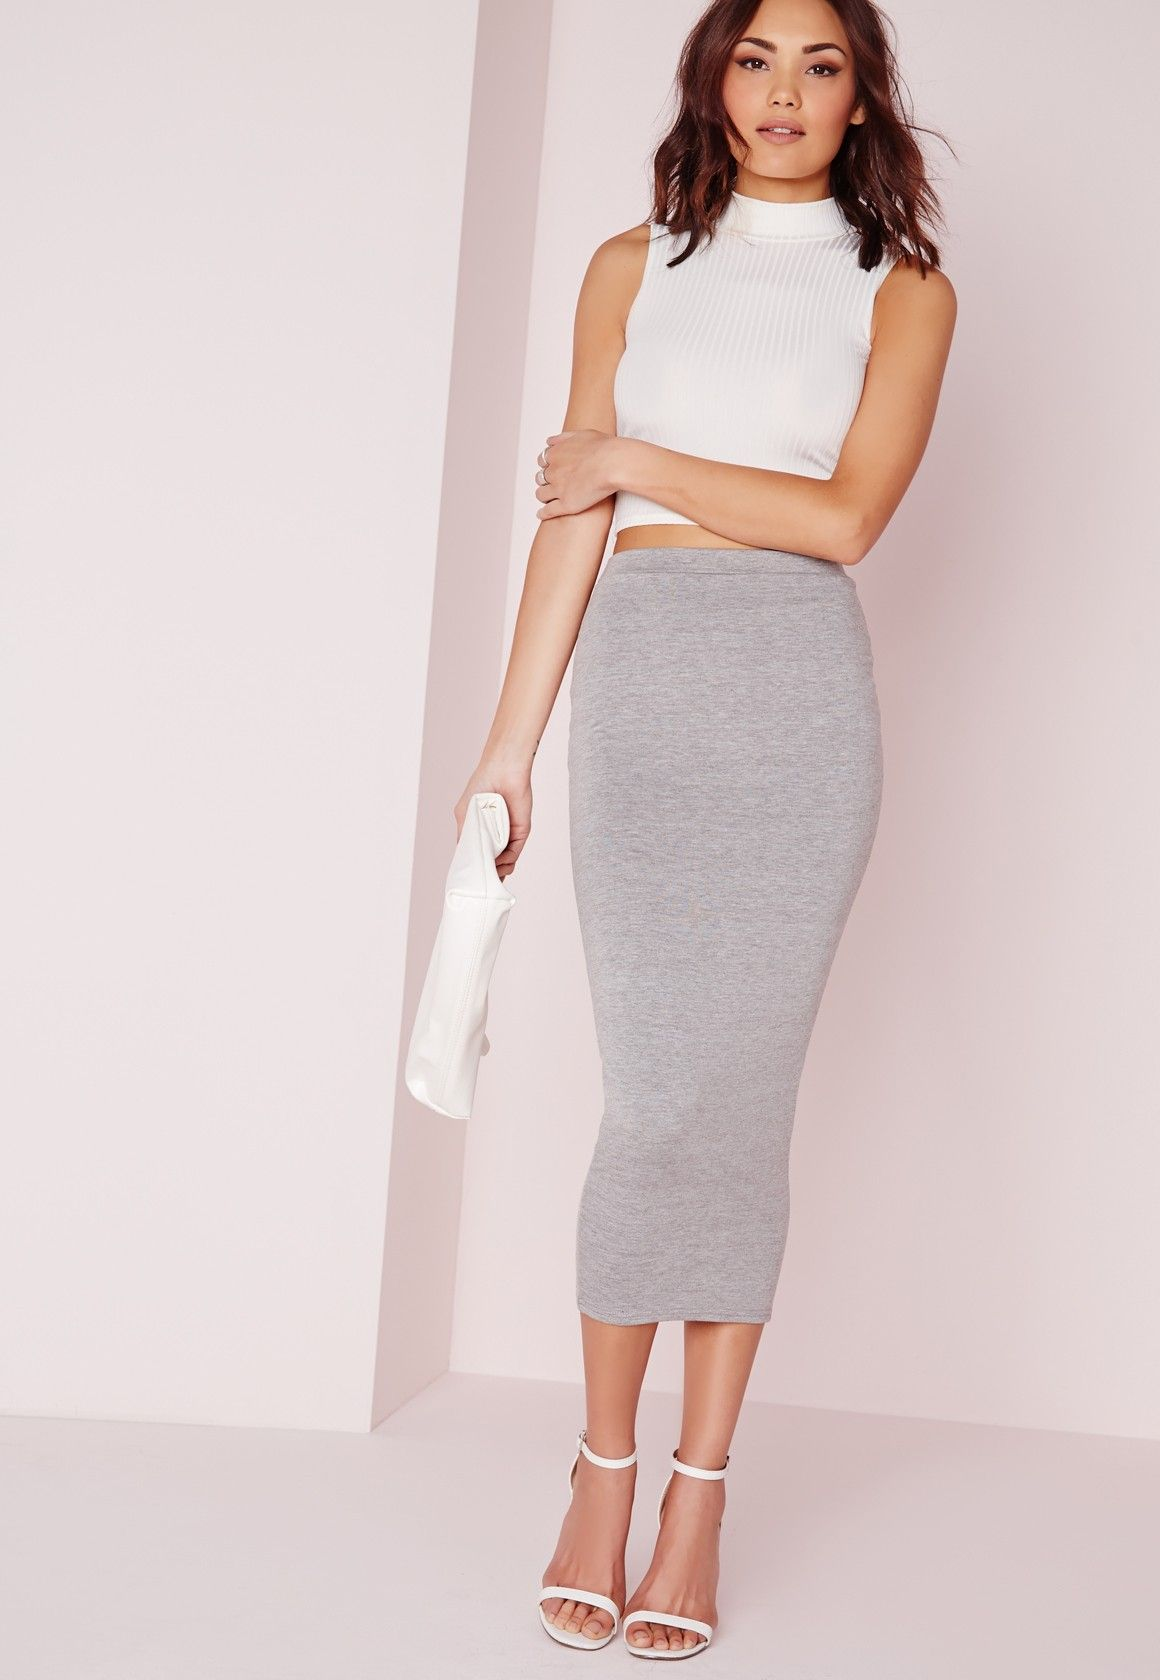 amp up your curves with our bodycon long midi skirt. coming to your